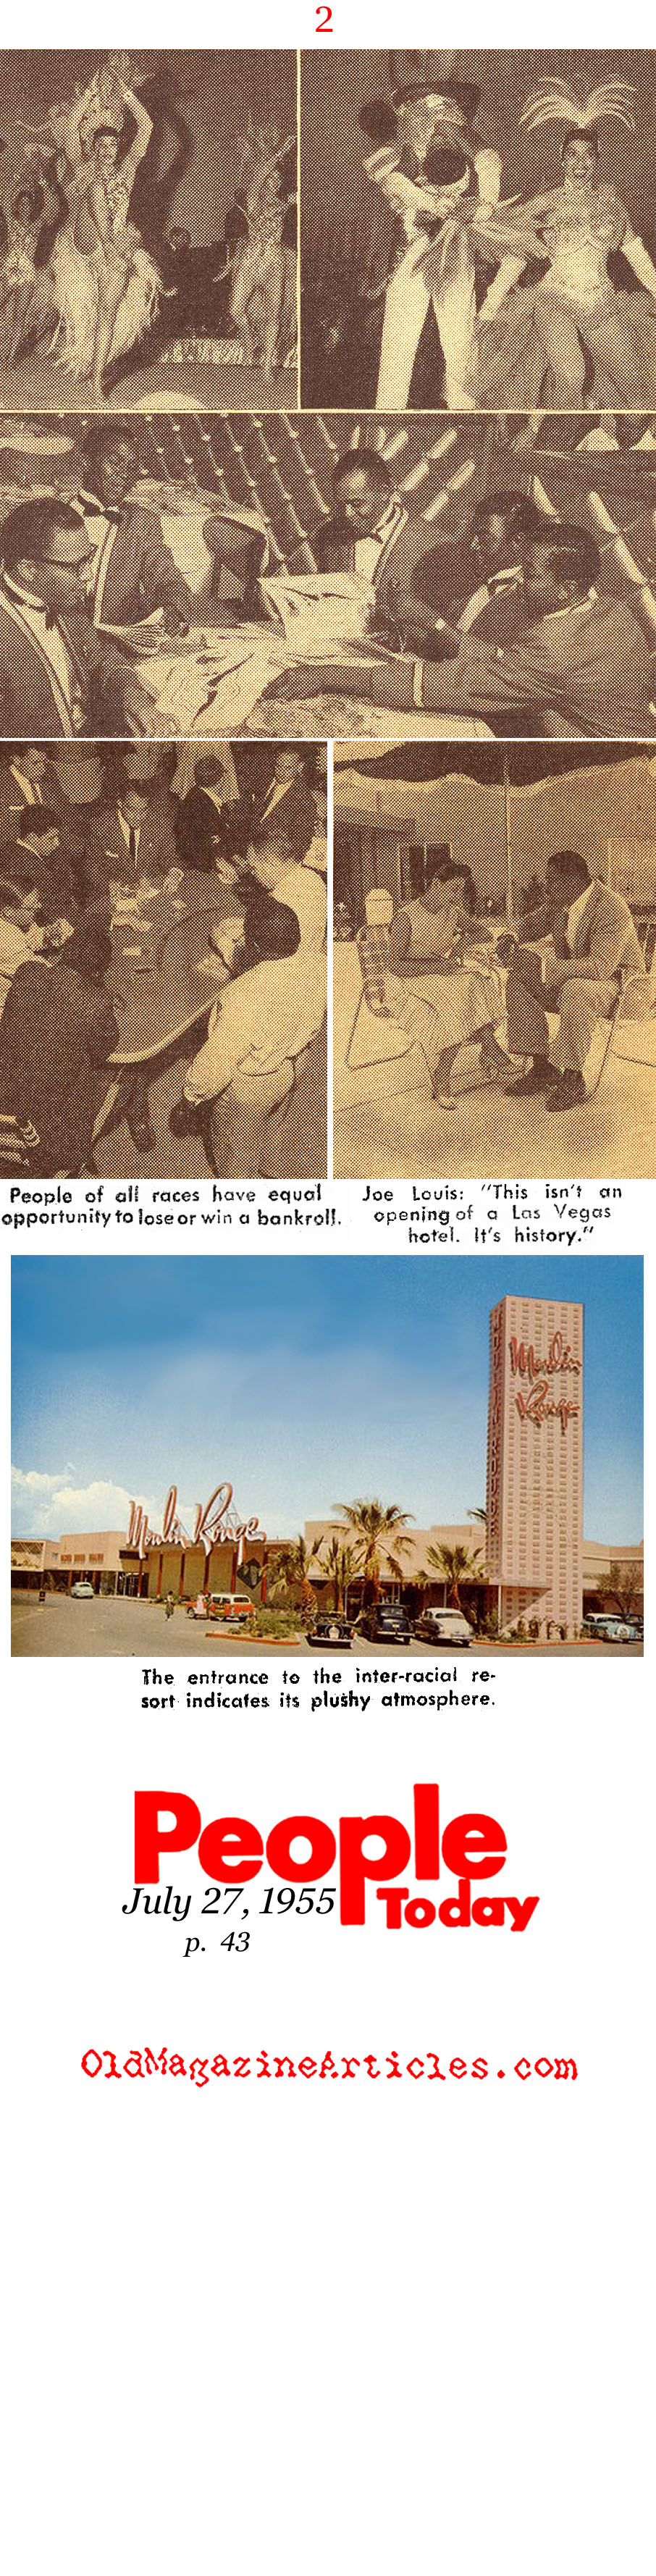 Racial Integration Comes to Sin City (People Today Magazine, 1955)